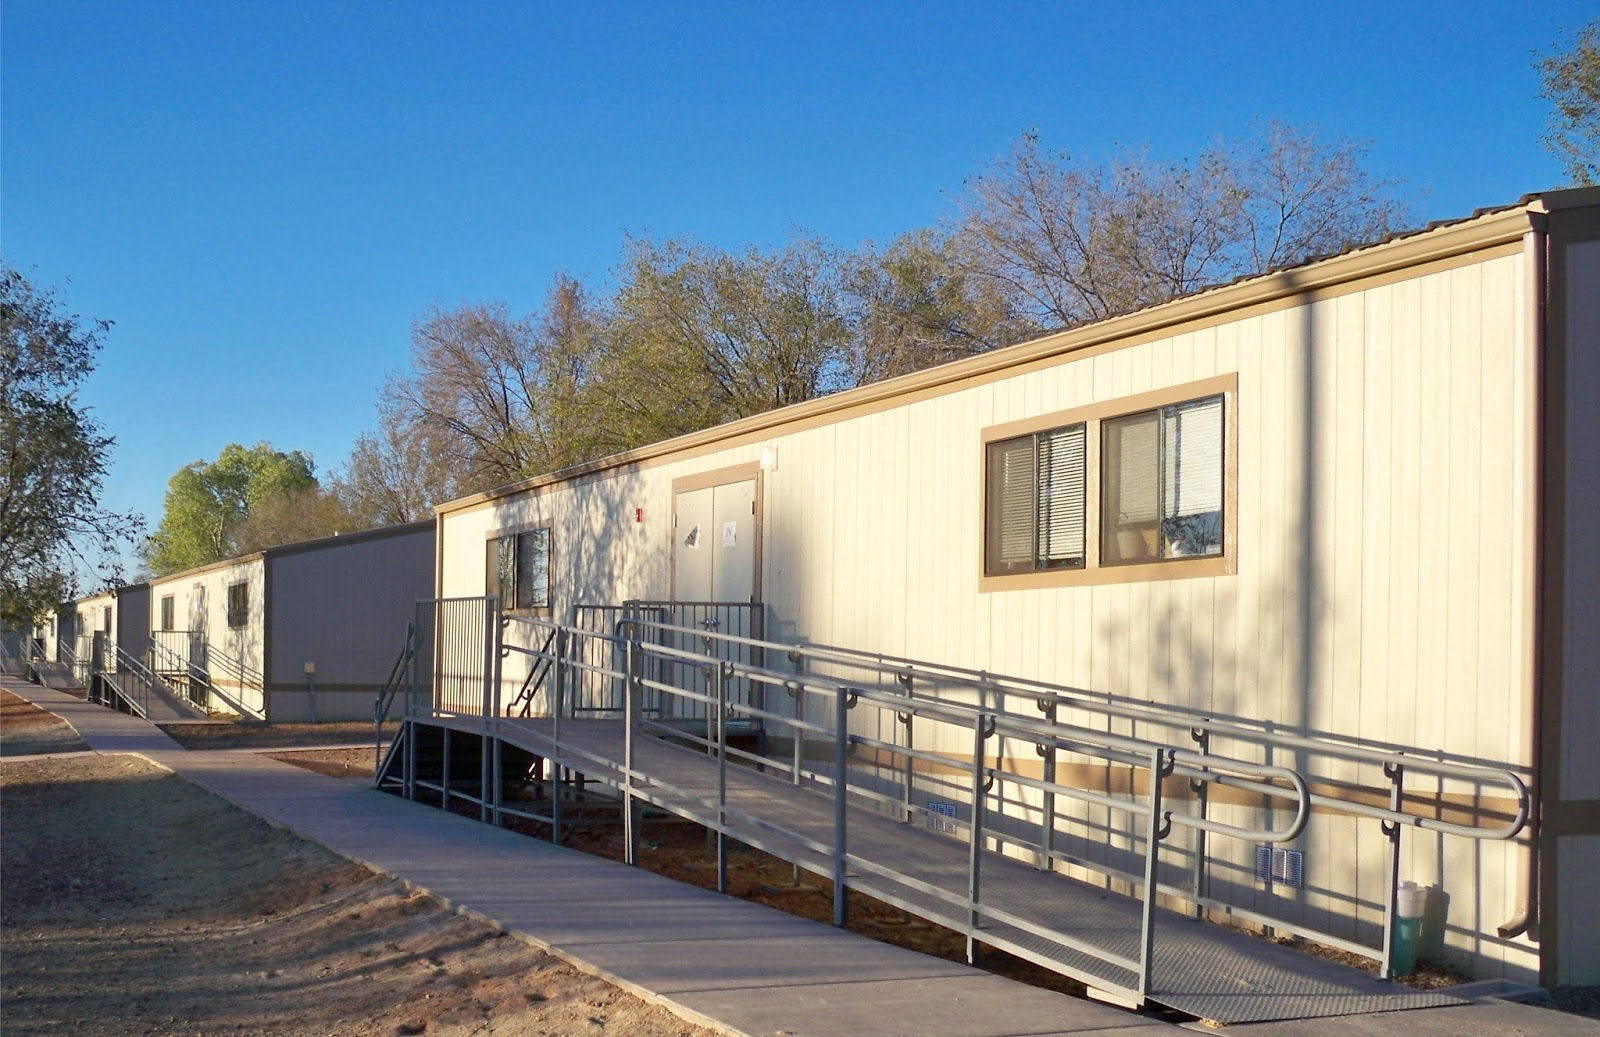 Definition Modular Classroom : Modular solutions ltd the experts on prefabricated